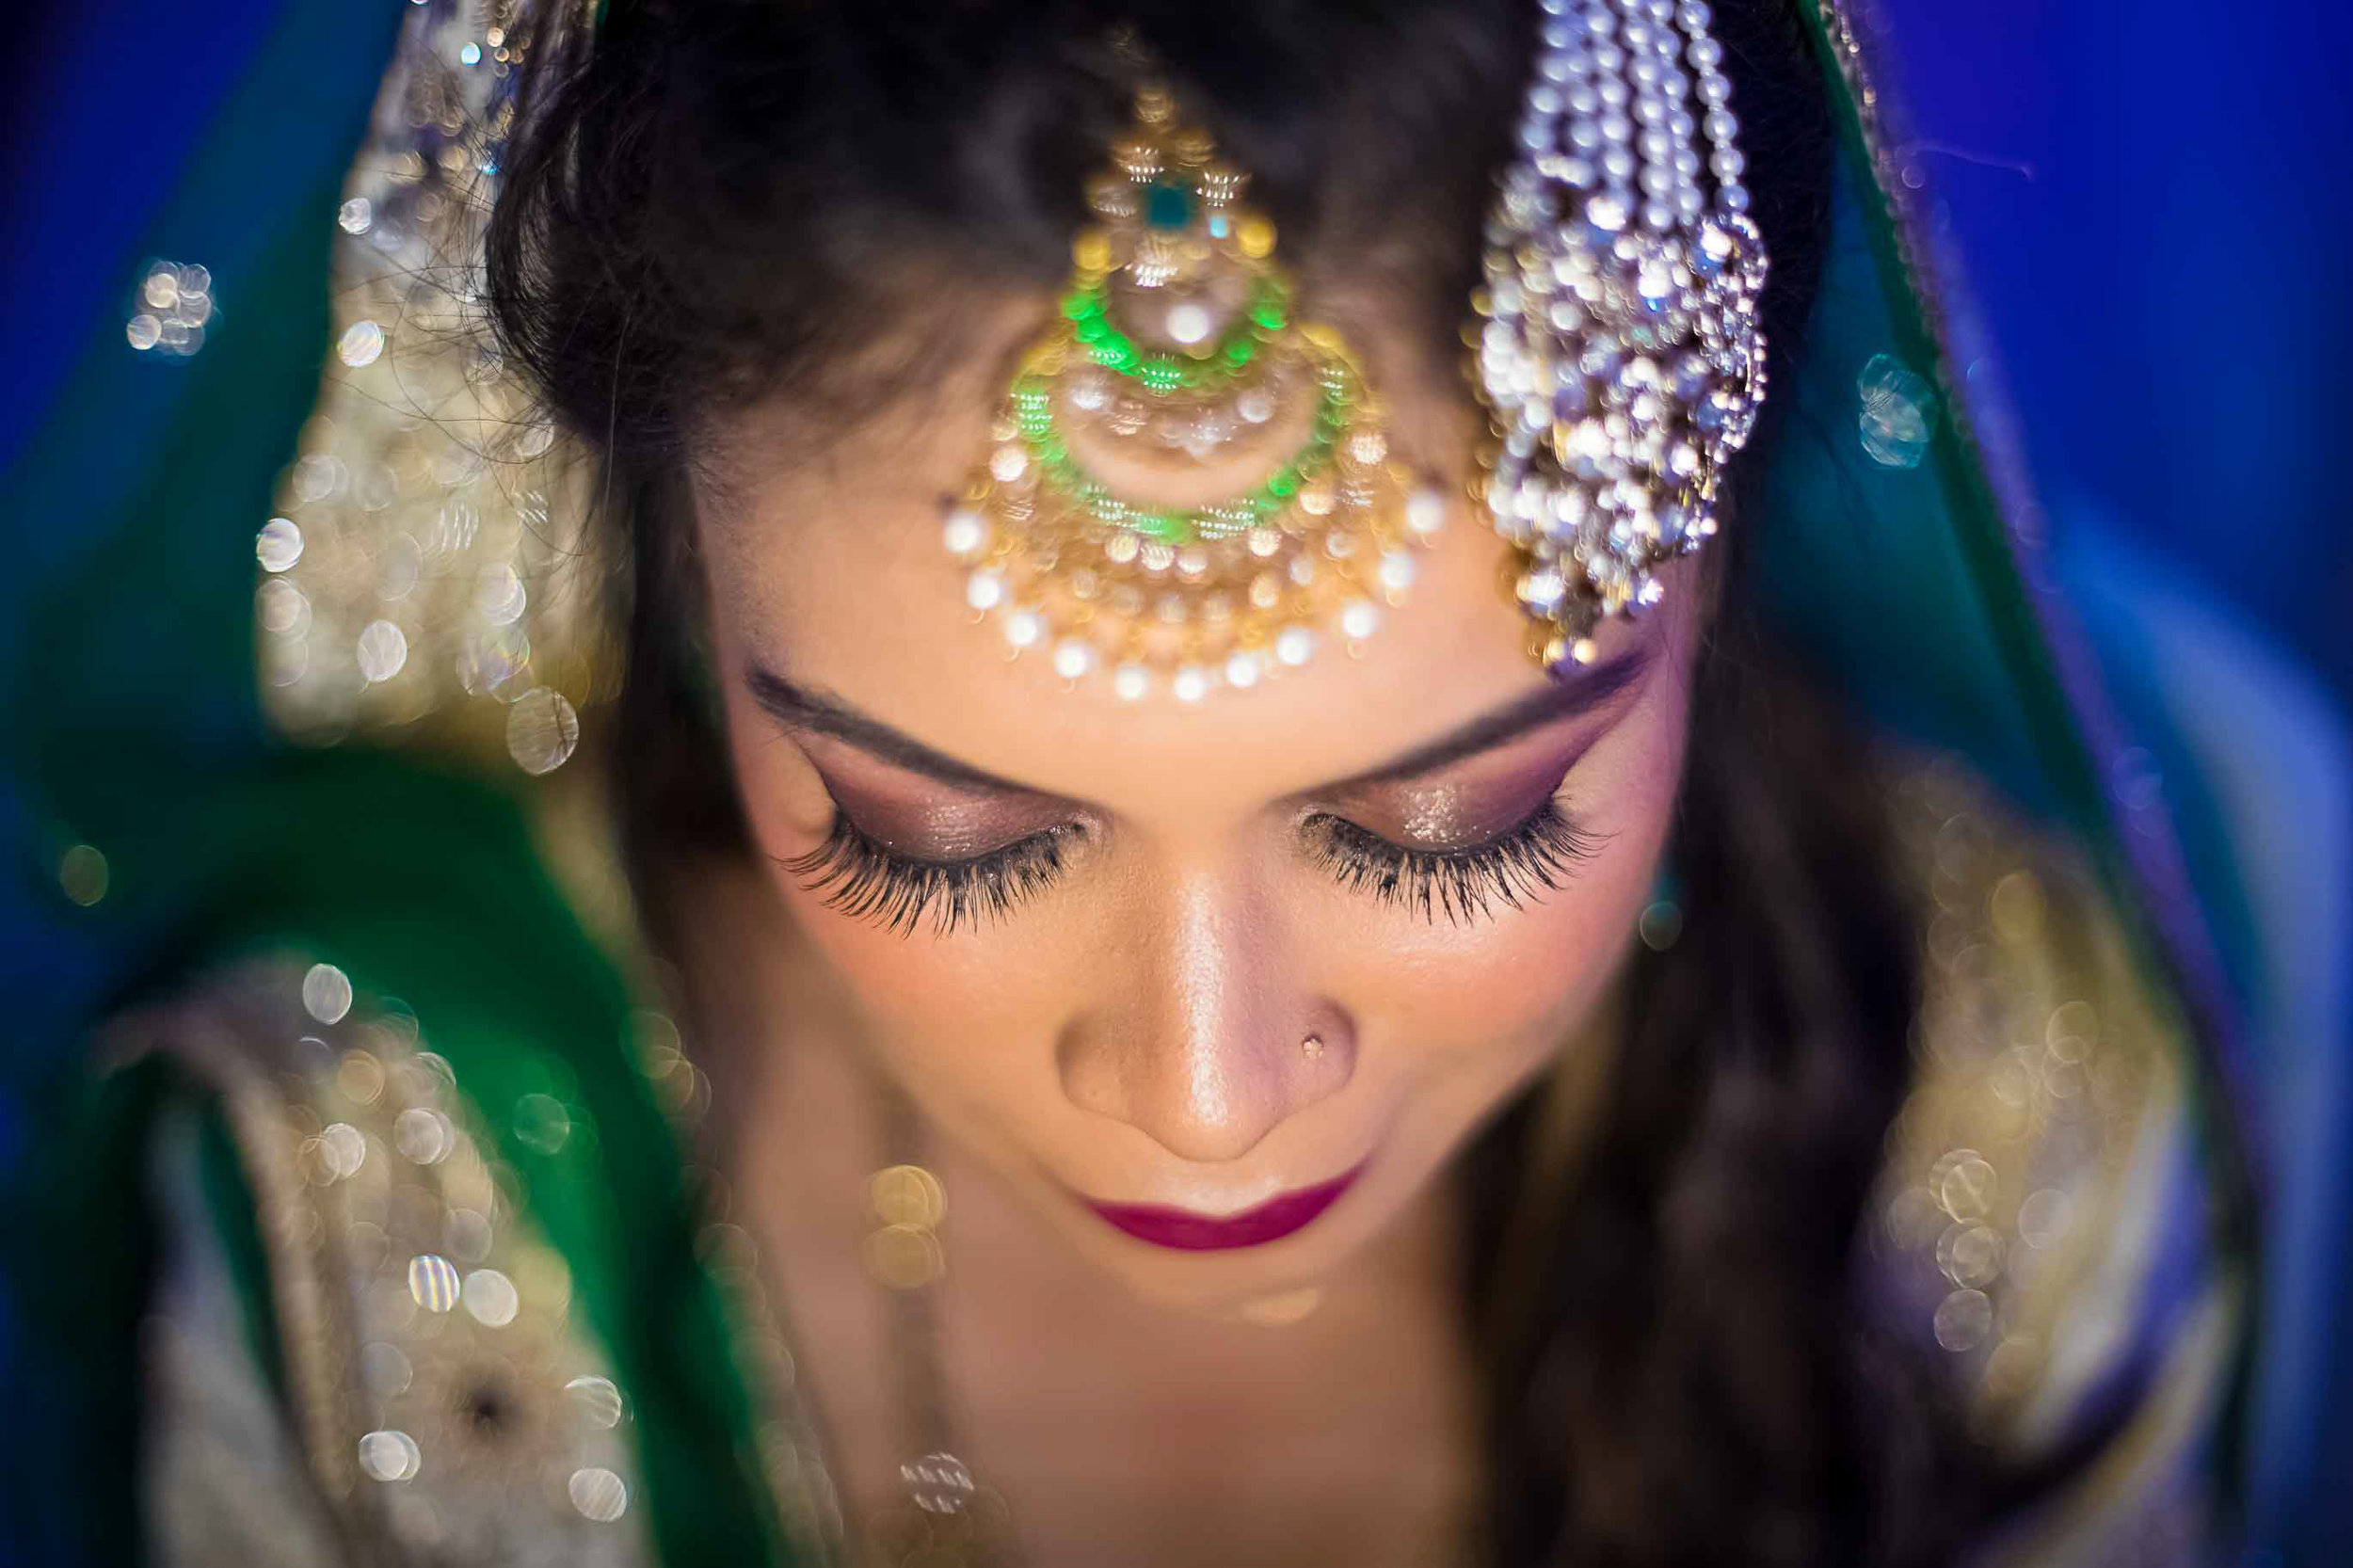 Pixel-Chronicles-Meraj-Yousuf-Candid-Wedding-Documentary-Photography-Beautiful-Bride-Best-Portrait-Muslim-Wedding-24.jpg